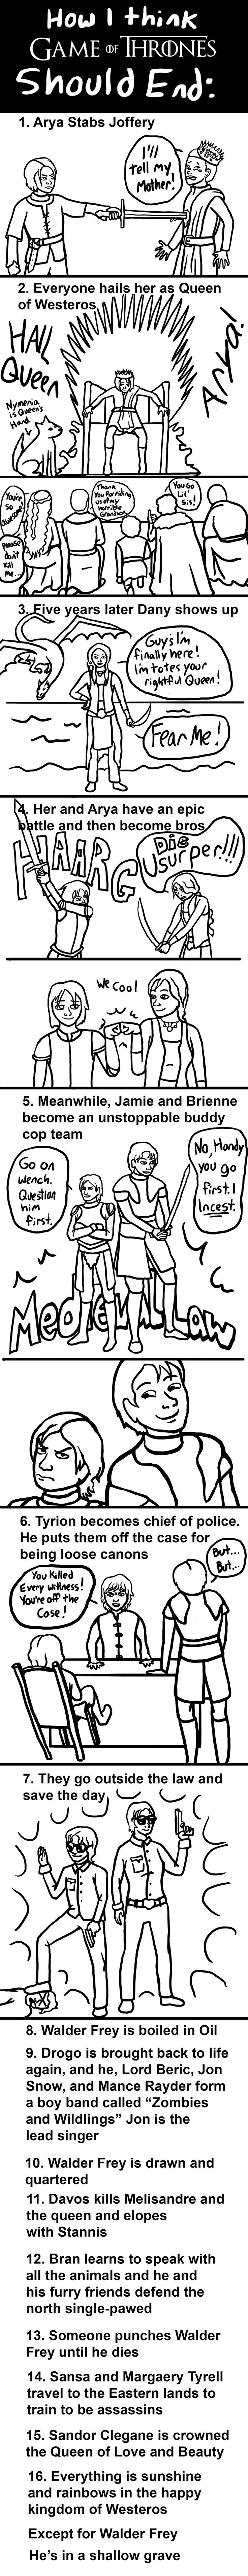 How Game of Thrones Should End by CoreenXavierson <<< YES, also bring back Robb, Talisa, & Ned Stark